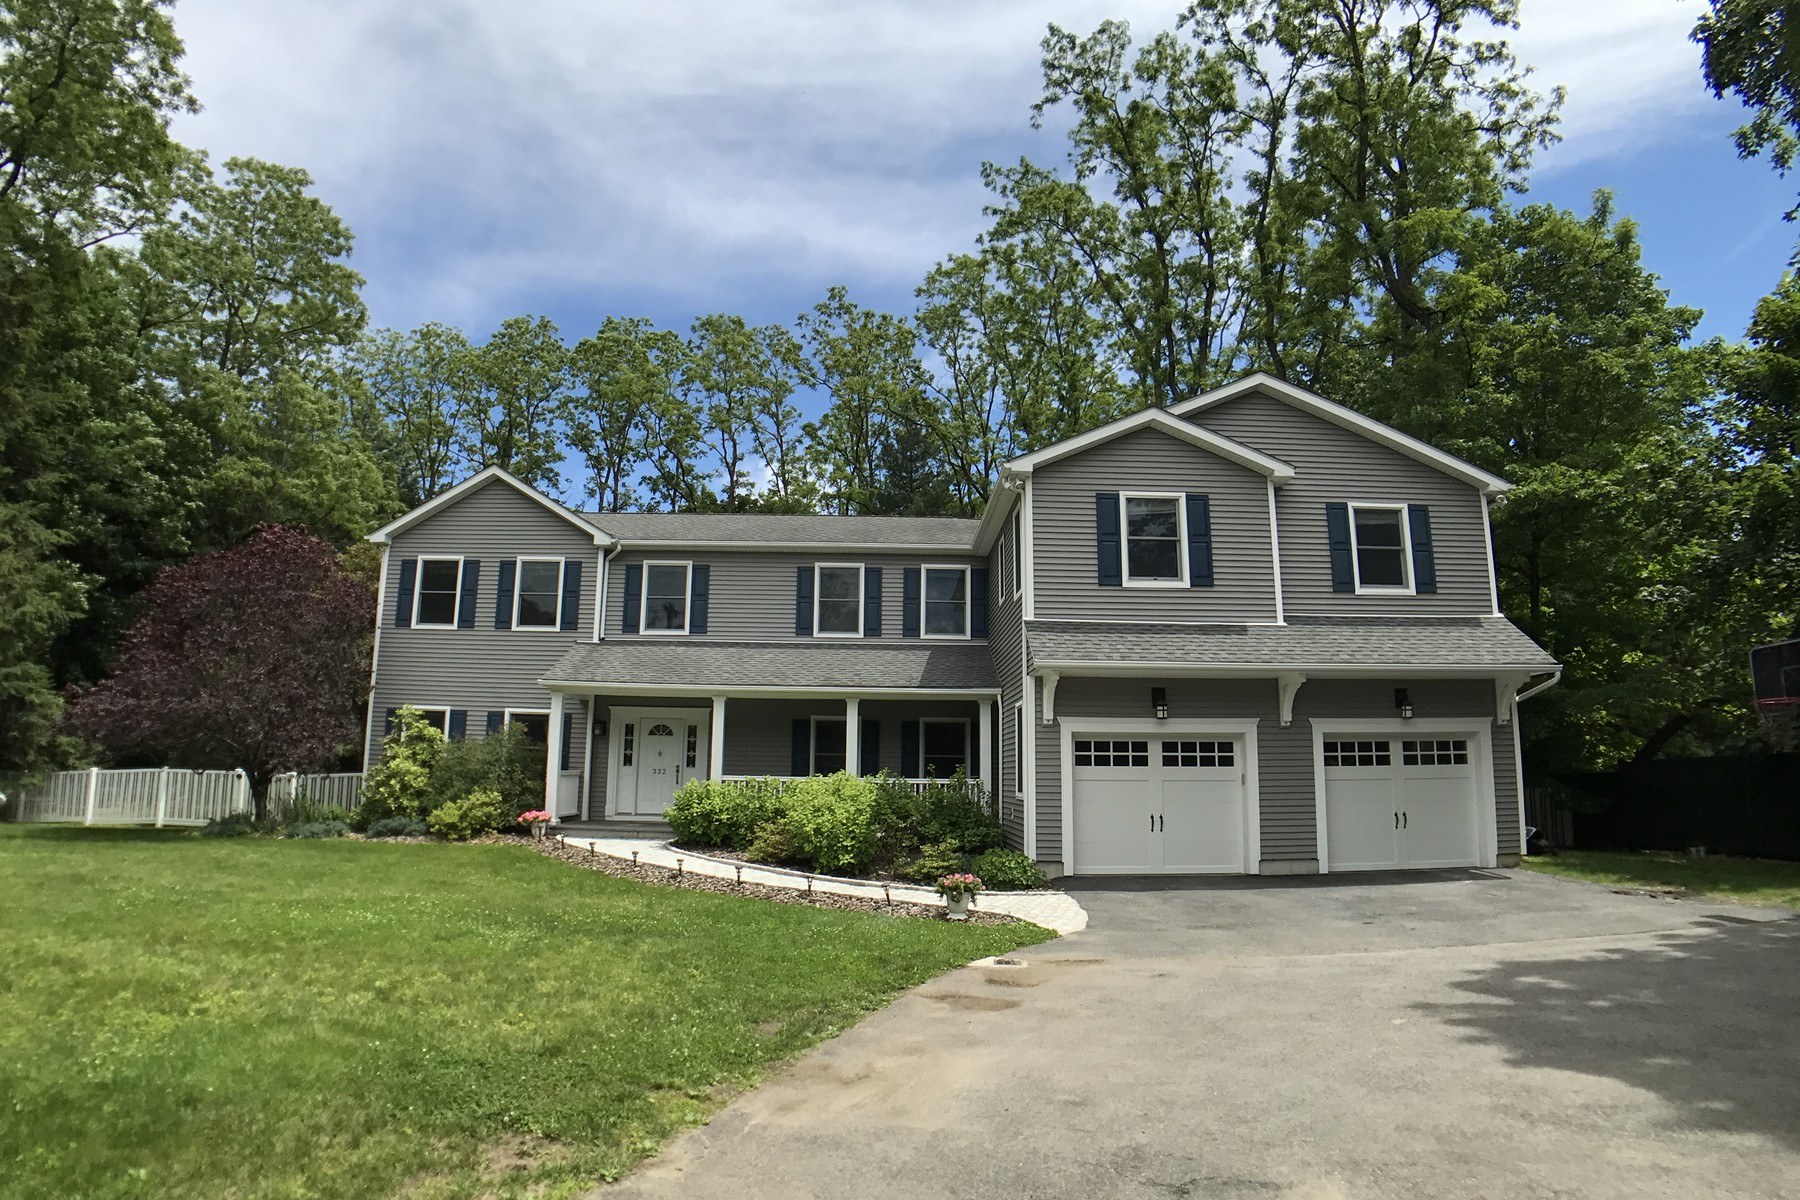 Single Family Home for Sale at Chappaqua Schools 332 Saw Mill River Road Millwood, New York 10546 United States